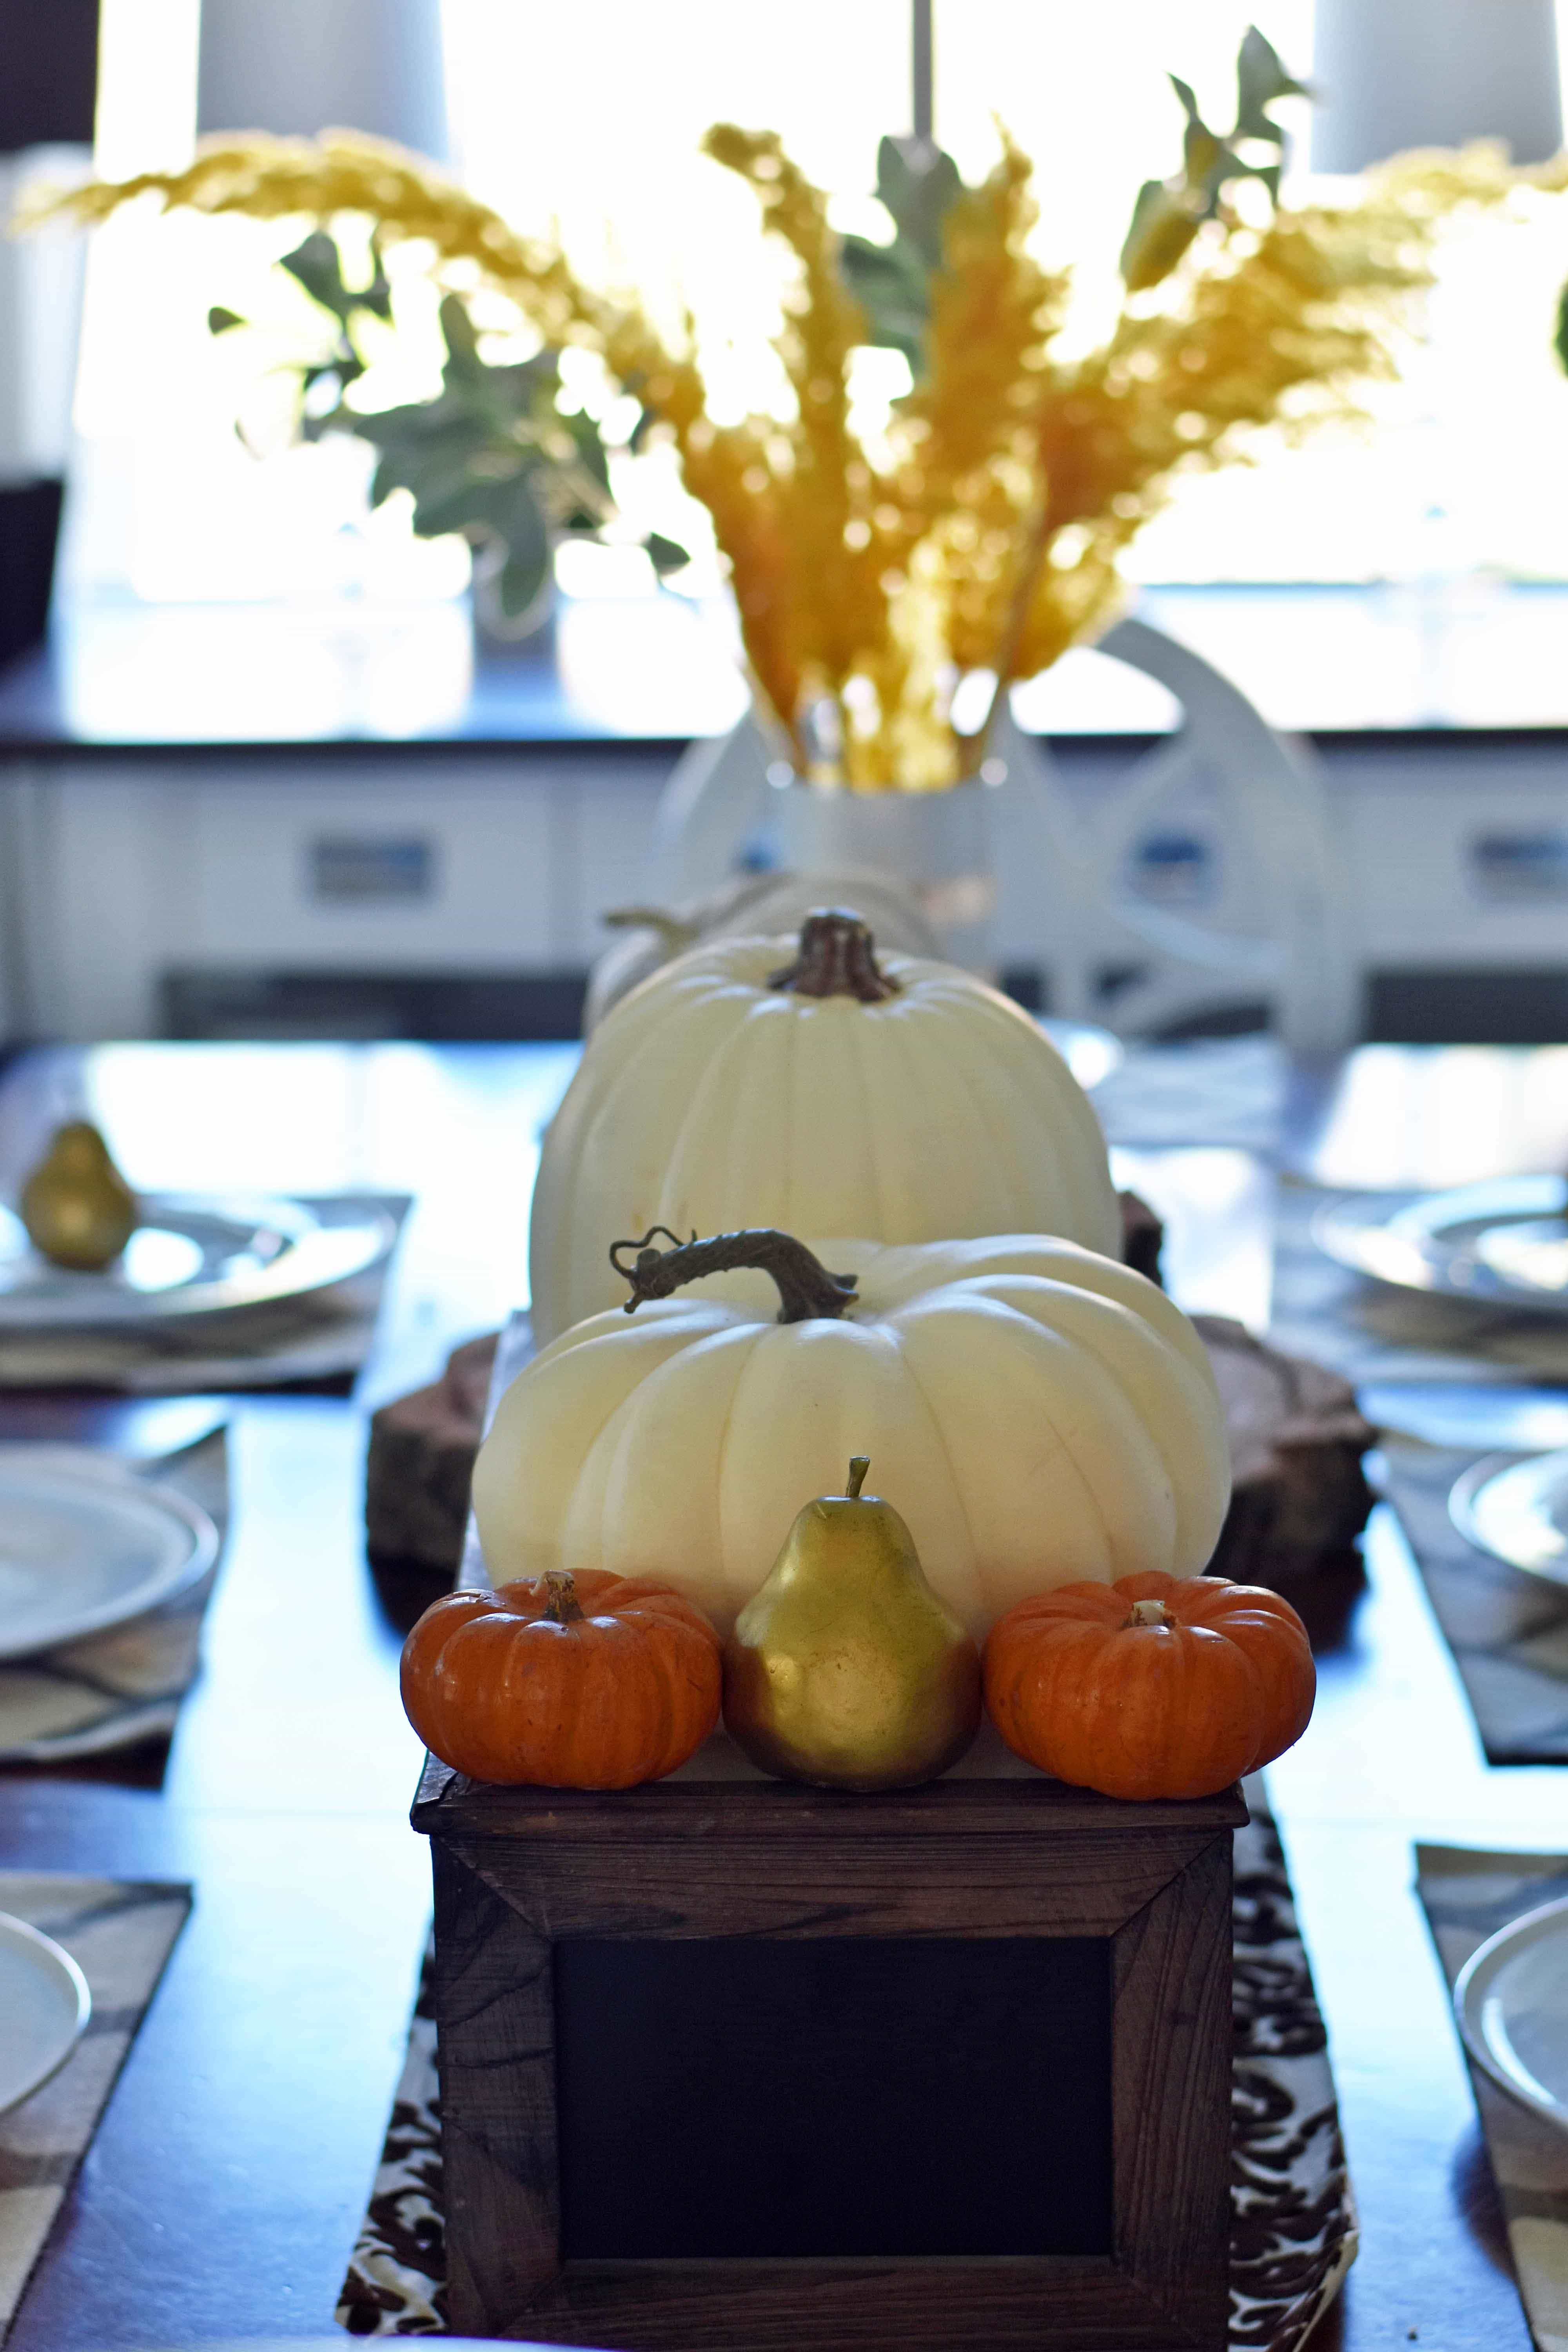 Fall Dining Room Table Decor Ideas. Craspedia Yellow Billy Ball Flowers in vintage vases. White pumpkins in wire baskets. Black and white striped pumpkin. Natural lamps, white entry table, and fall decor. Fixer Upper cotton ball stems. How to decorate your home for Fall.